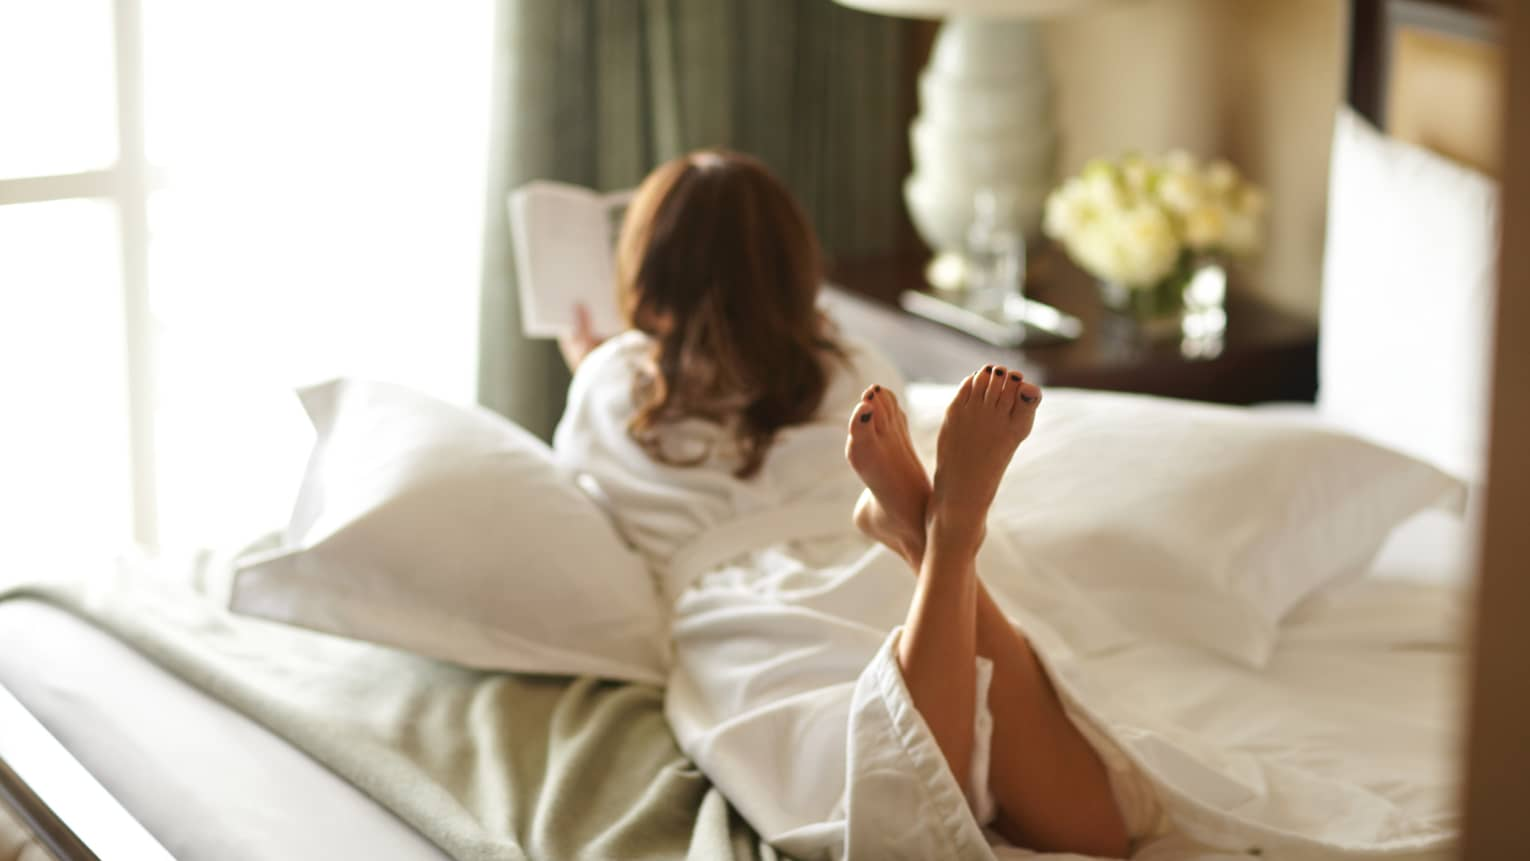 Woman in white bathrobe reads book, lies on bed with legs crossed